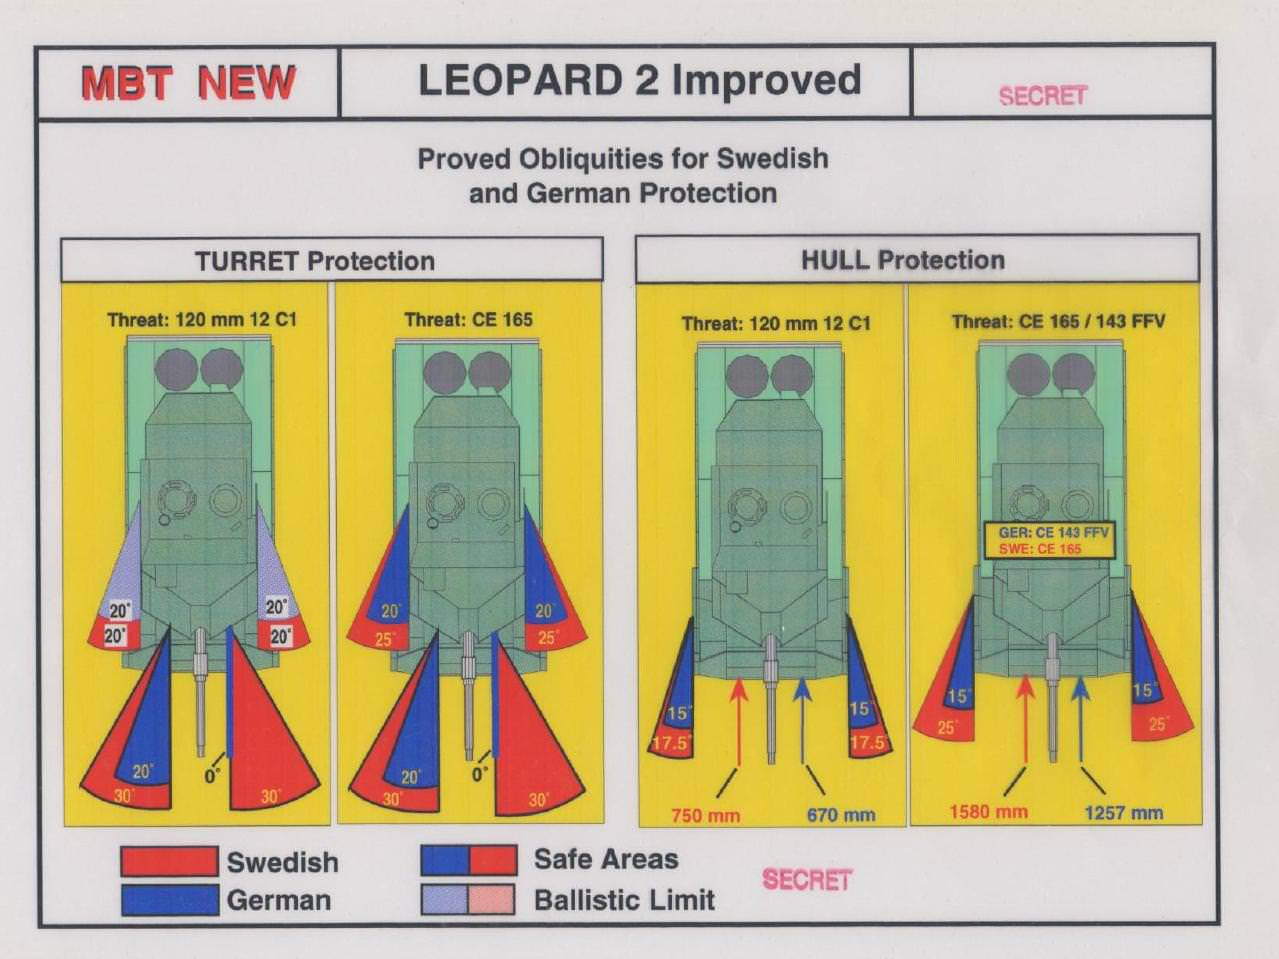 leopard 2 sweden comparison